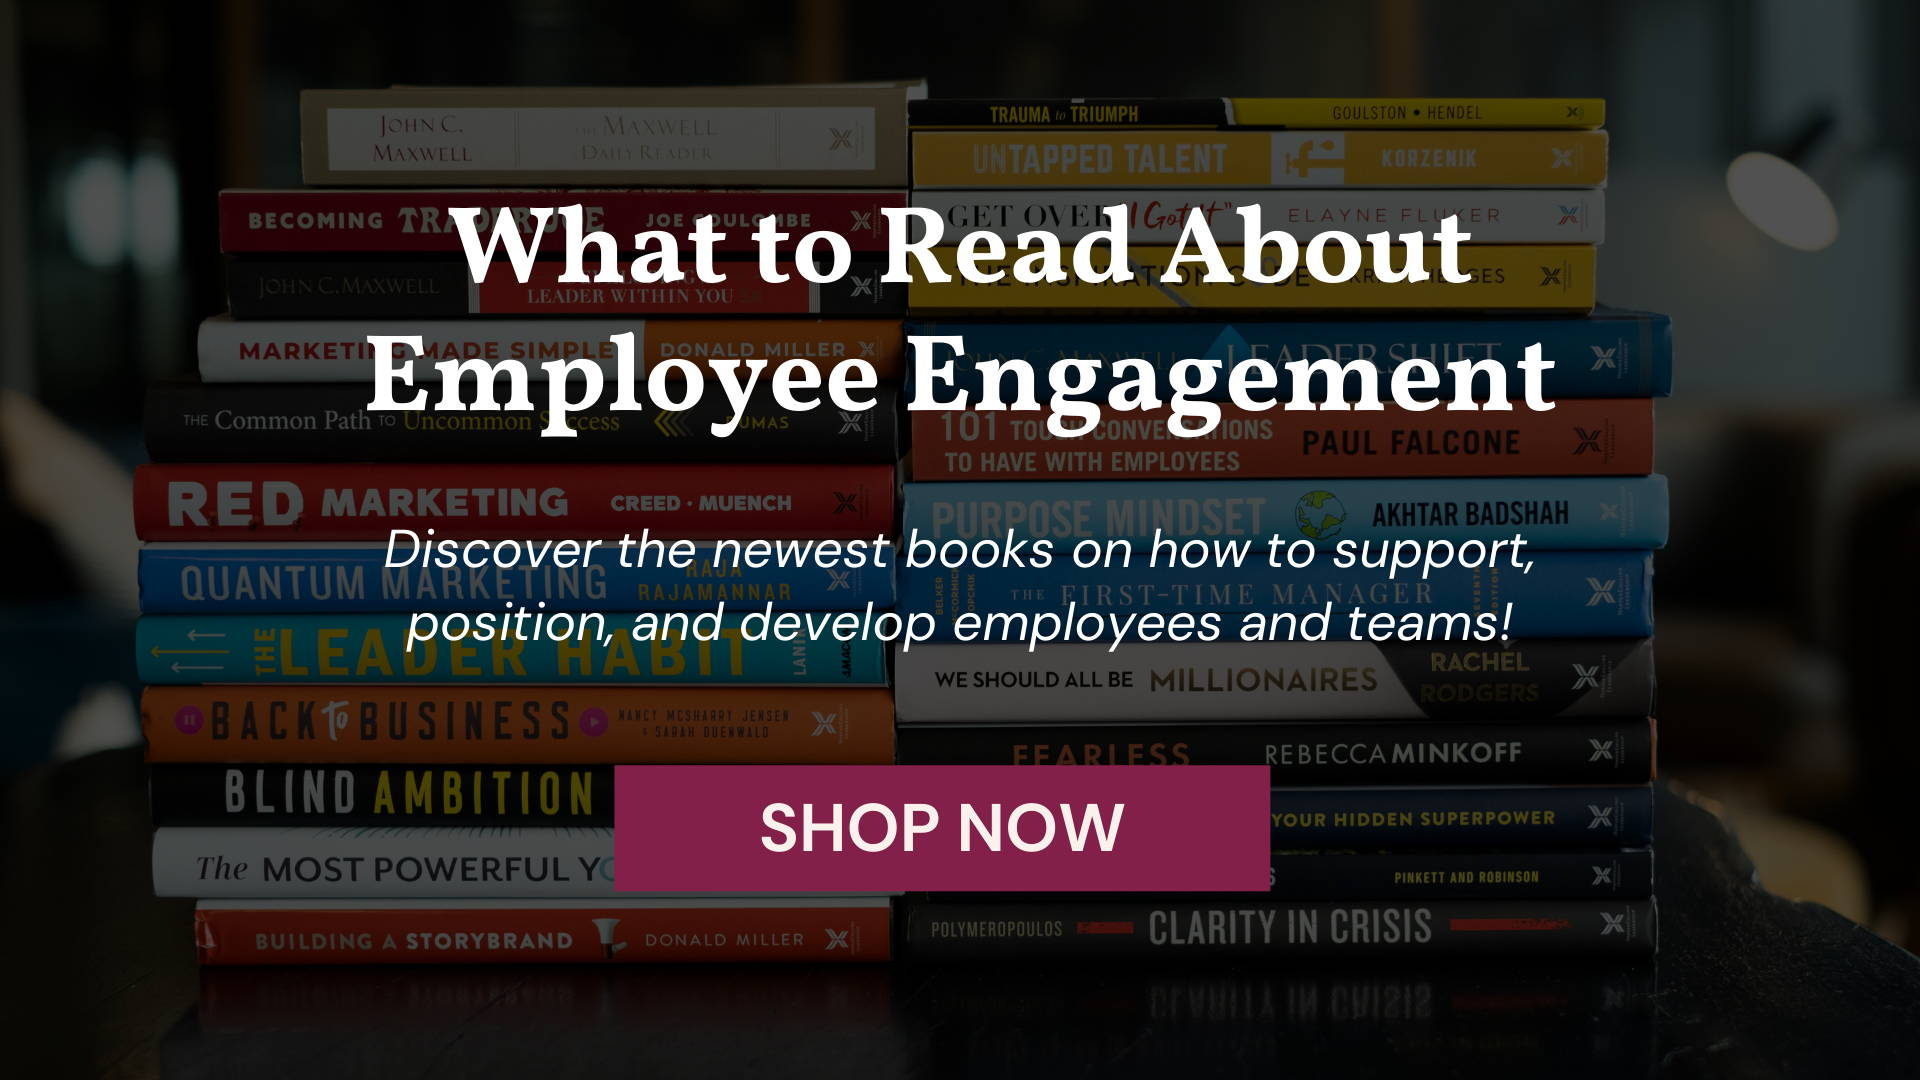 https://hcleadershipessentials.com/collections/top-employee-engagement-books-of-2021